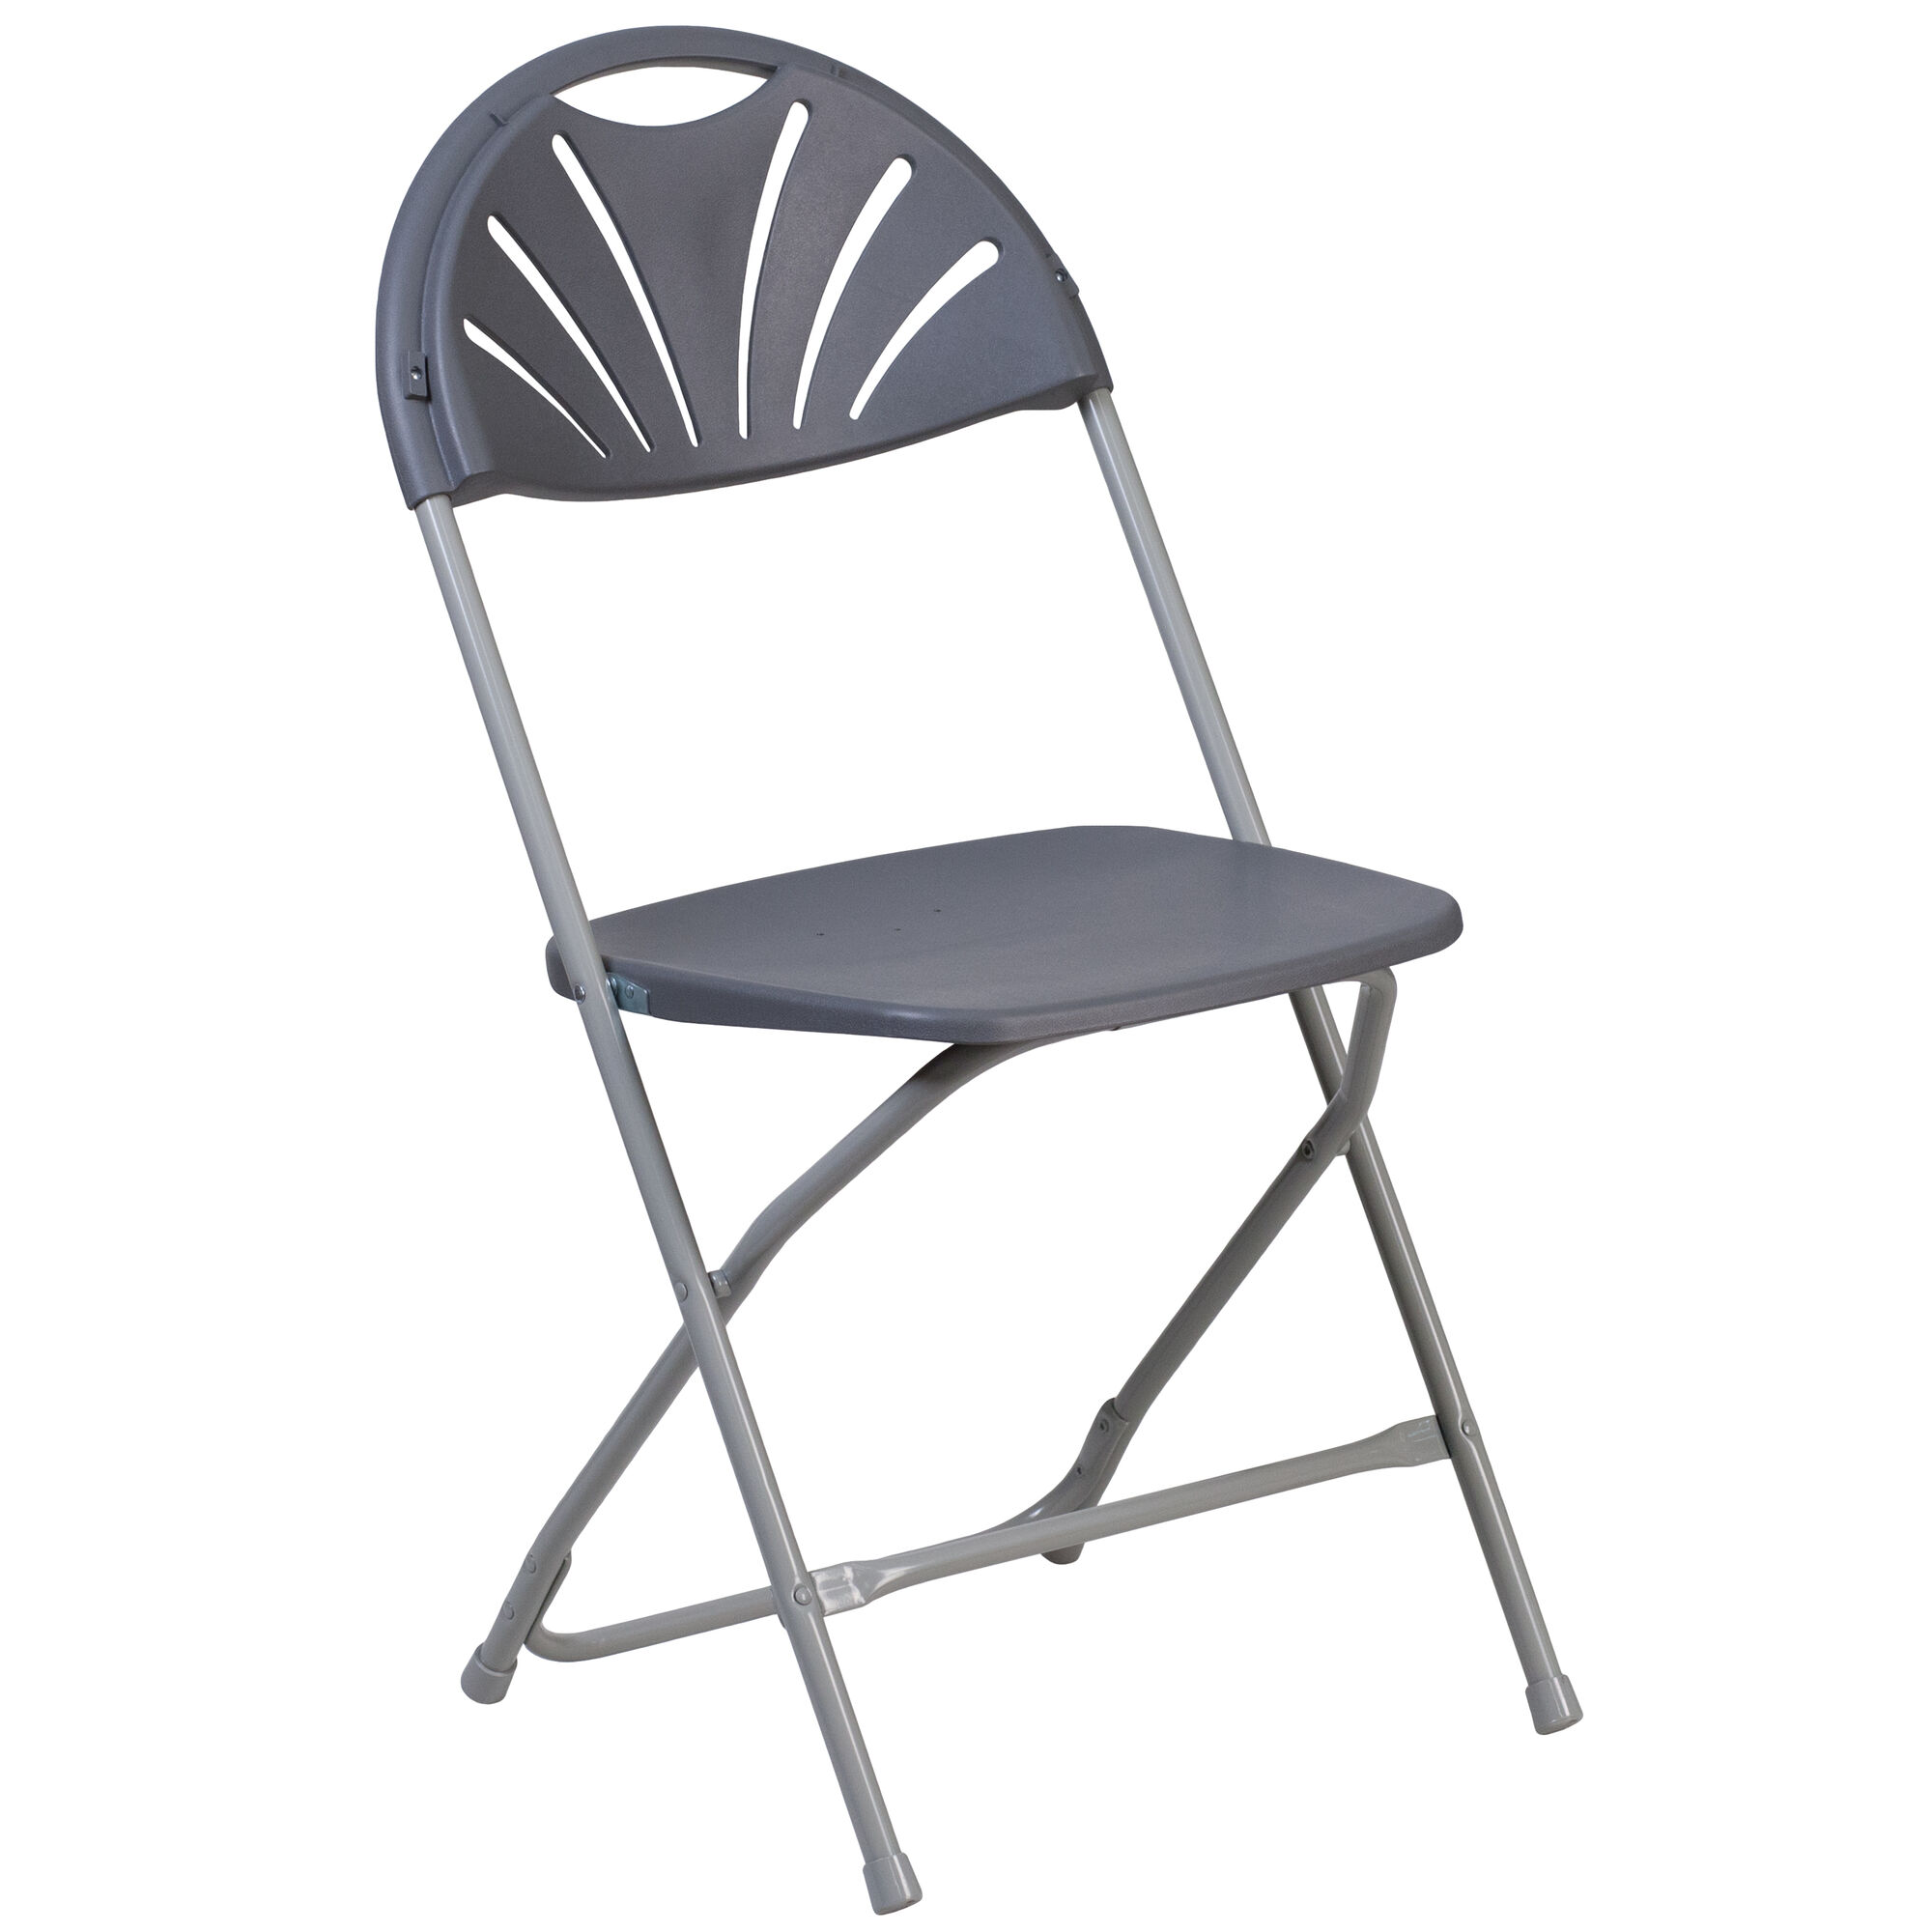 Marvelous Hercules Series 650 Lb Capacity Charcoal Plastic Fan Back Folding Chair Andrewgaddart Wooden Chair Designs For Living Room Andrewgaddartcom